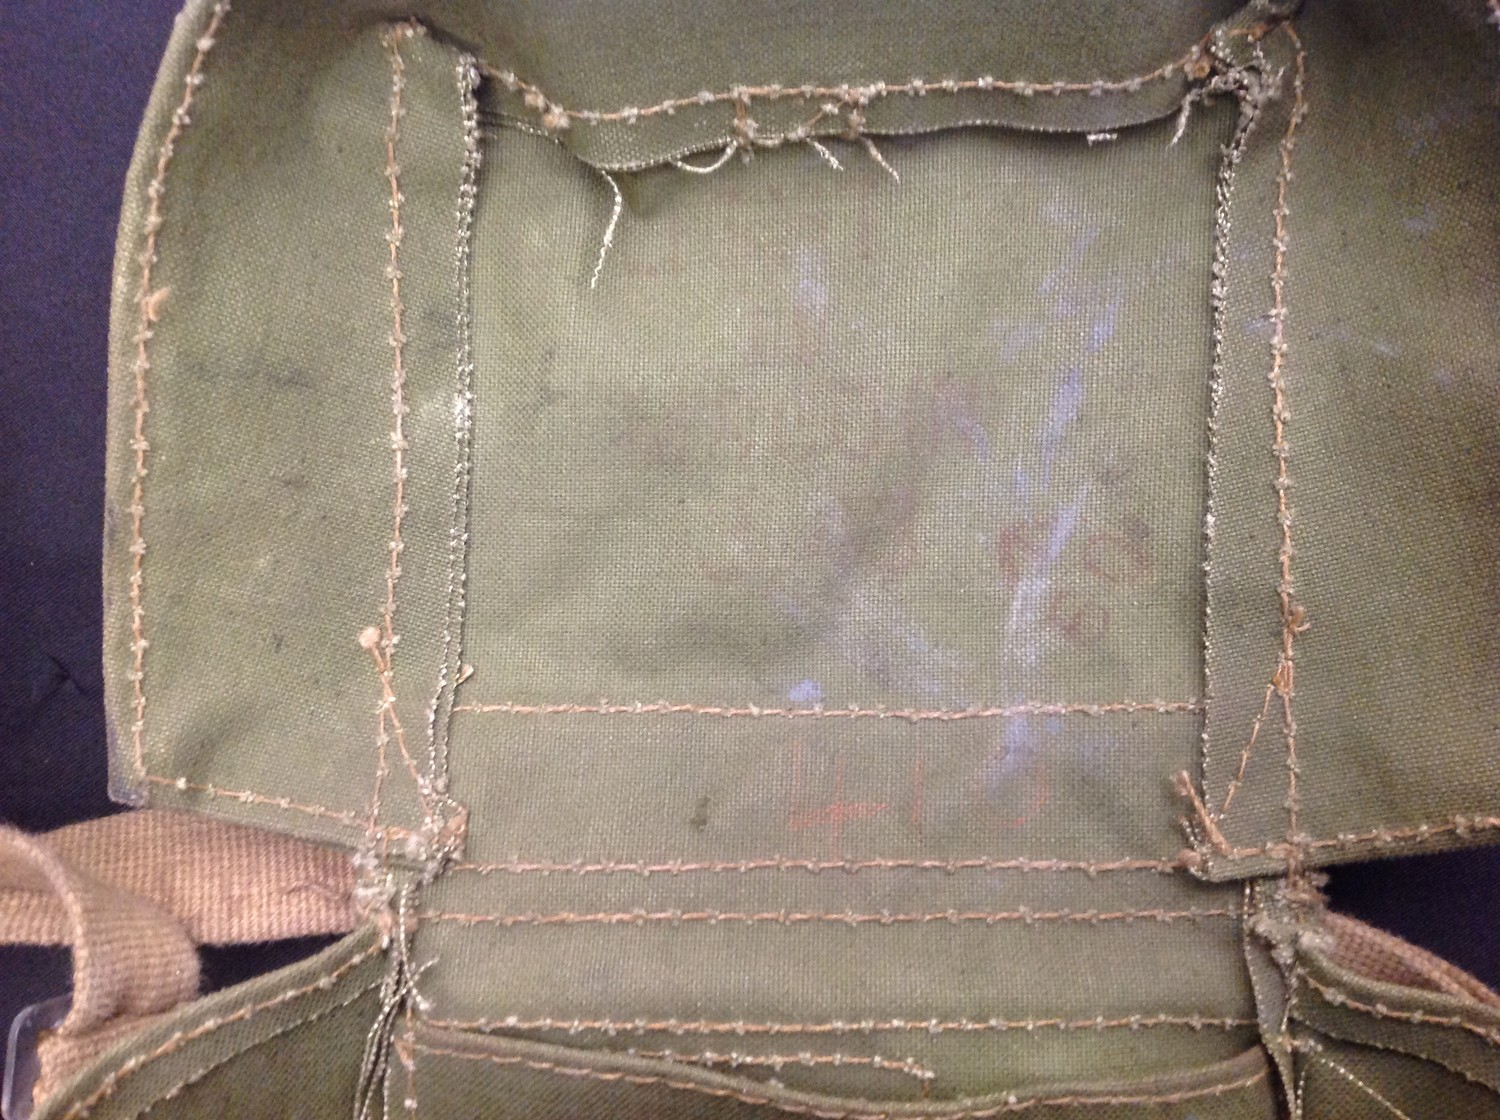 WW2 pattern British Lightweight Respirator, mask dated 1956, straps dated 1964 and complete with a - Image 4 of 4